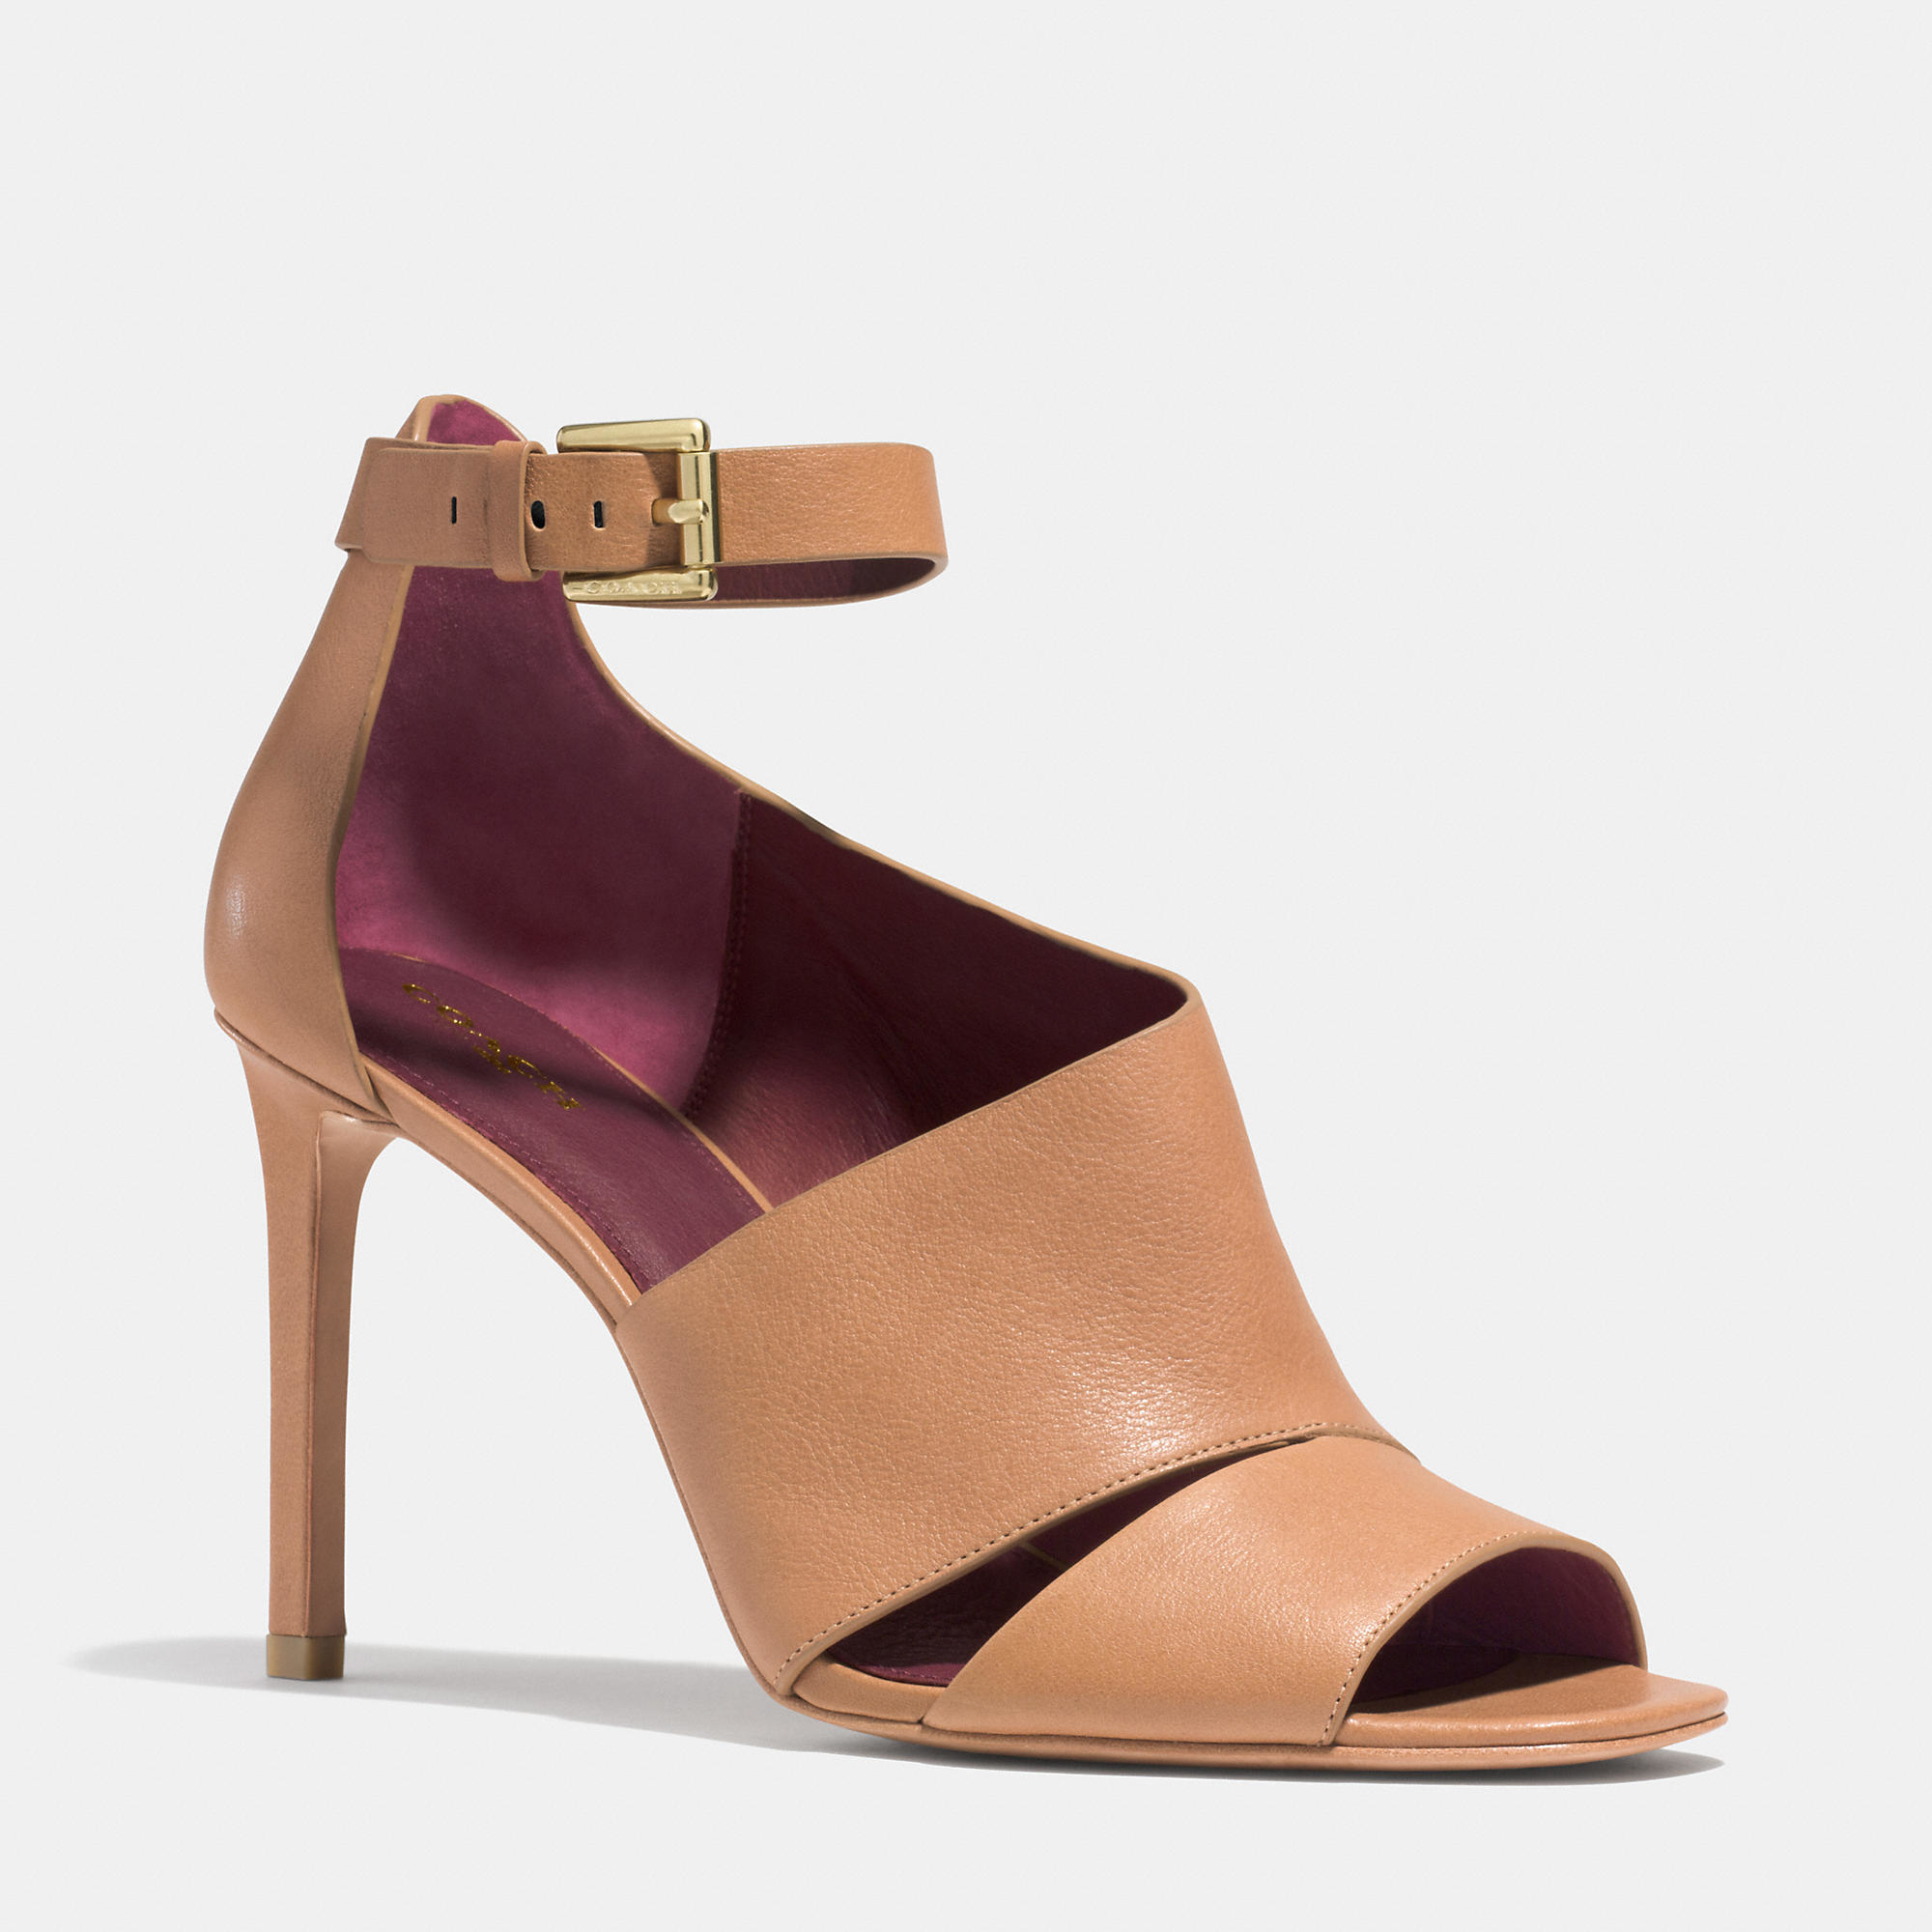 Lyst - Coach Manhattan Heel in Brown